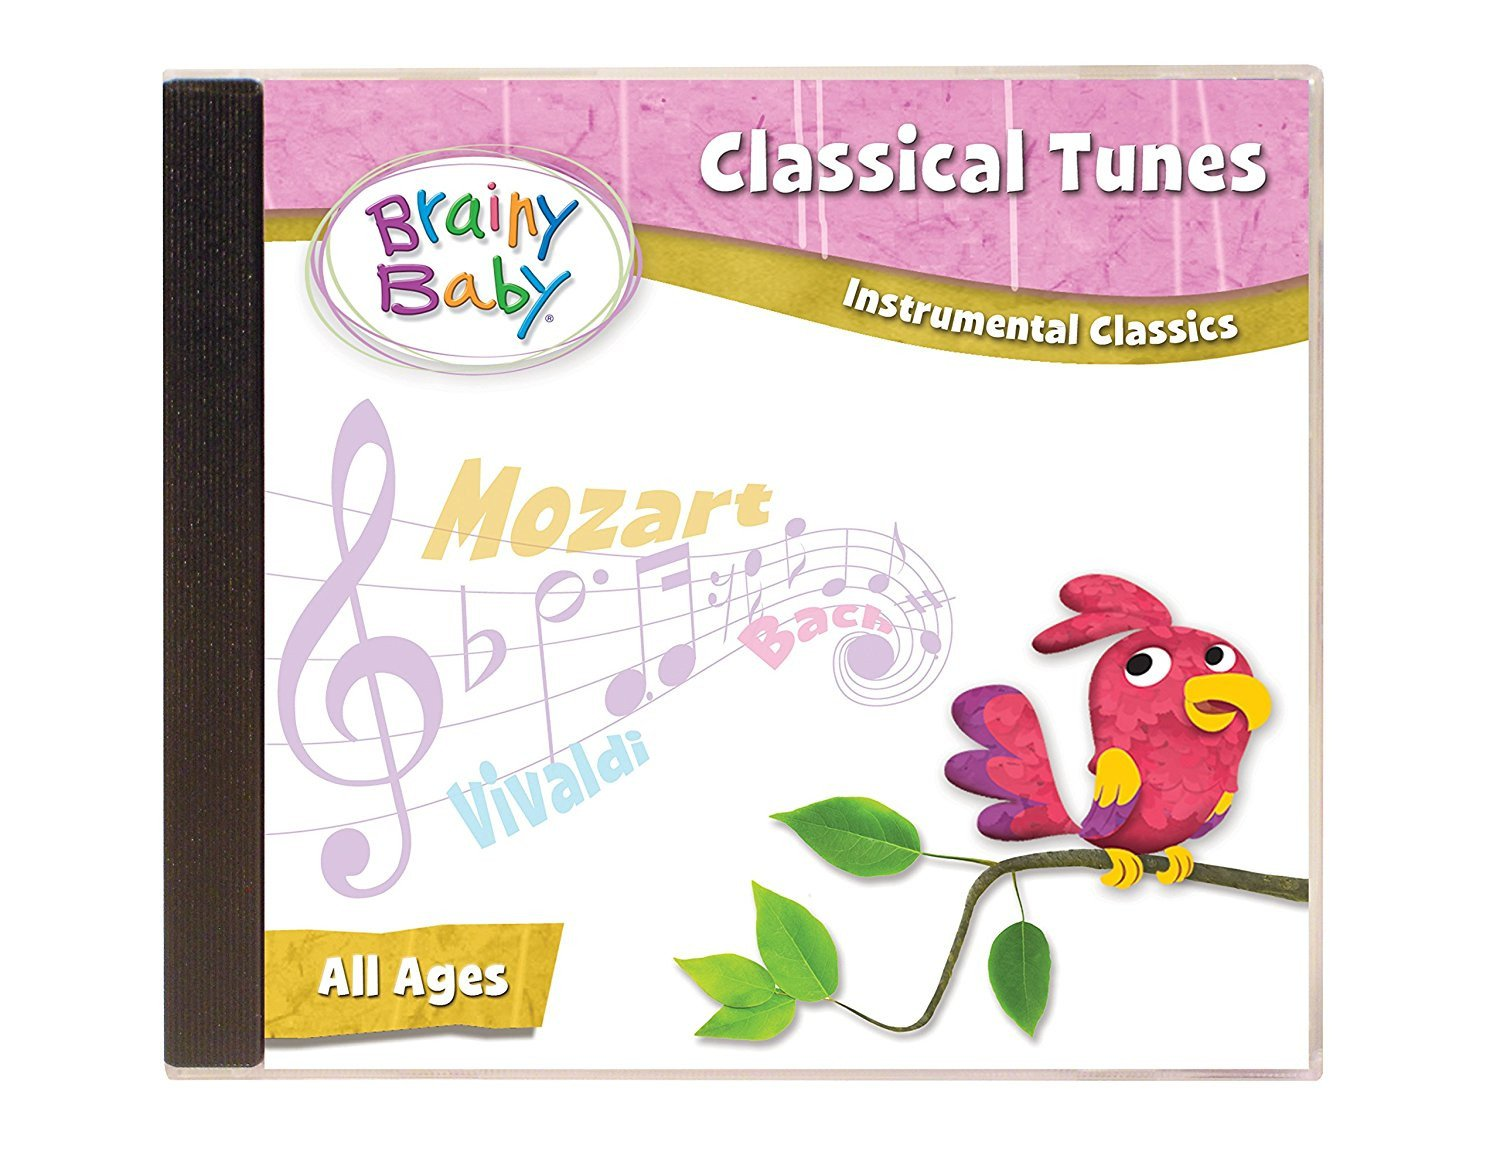 Brainy Baby Classical Tunes Music CD